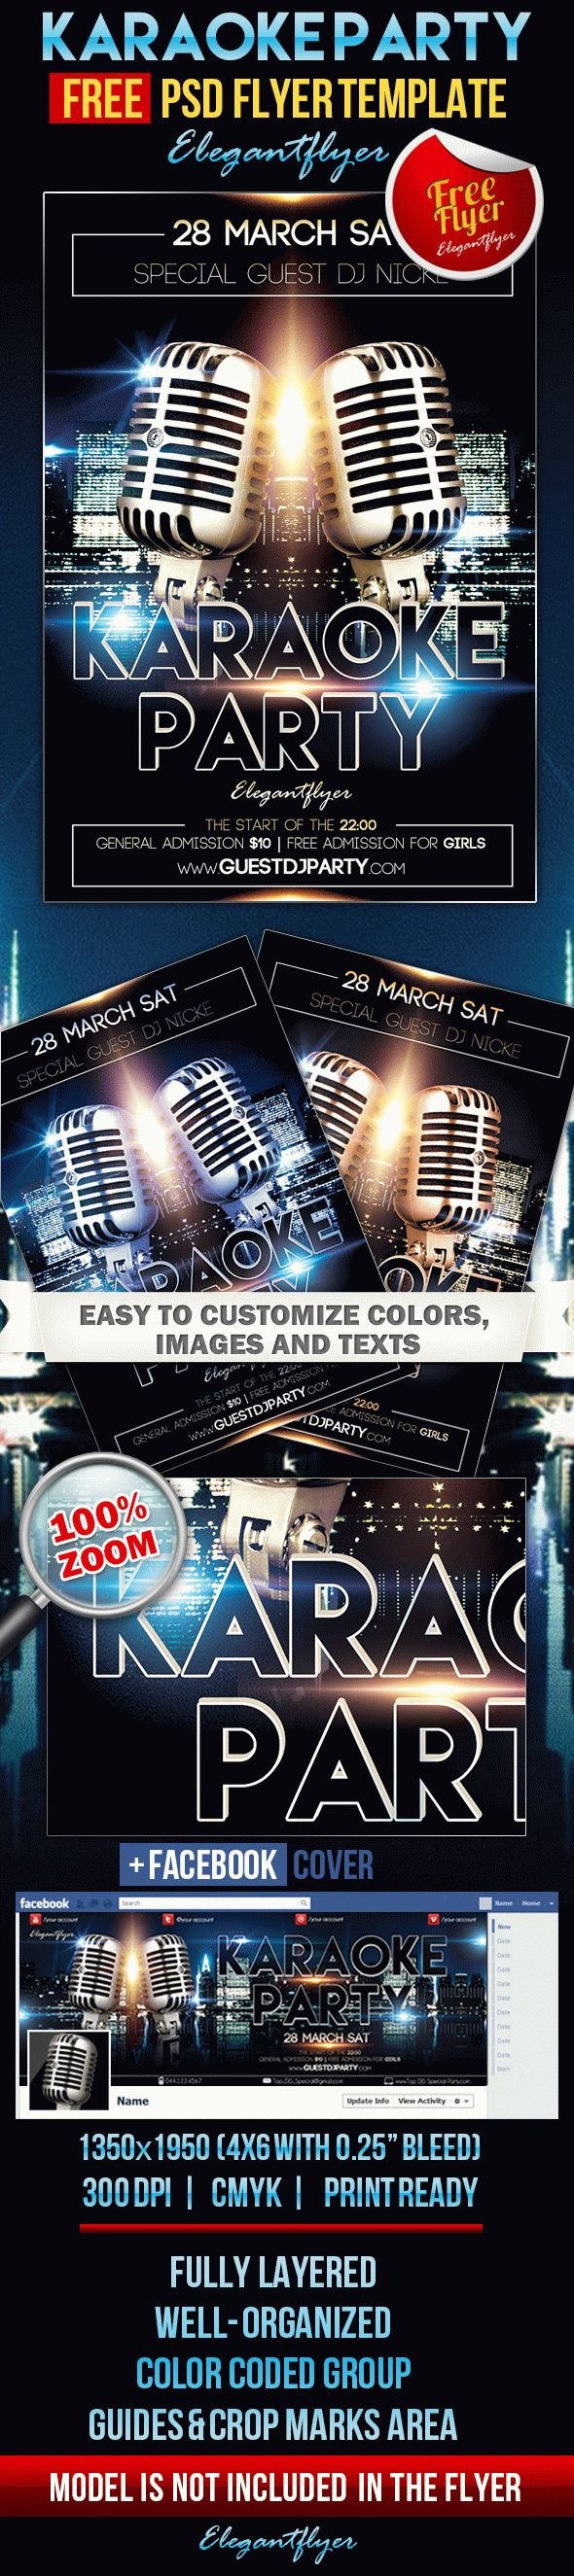 Karaoke Party – Free Flyer PSD Template